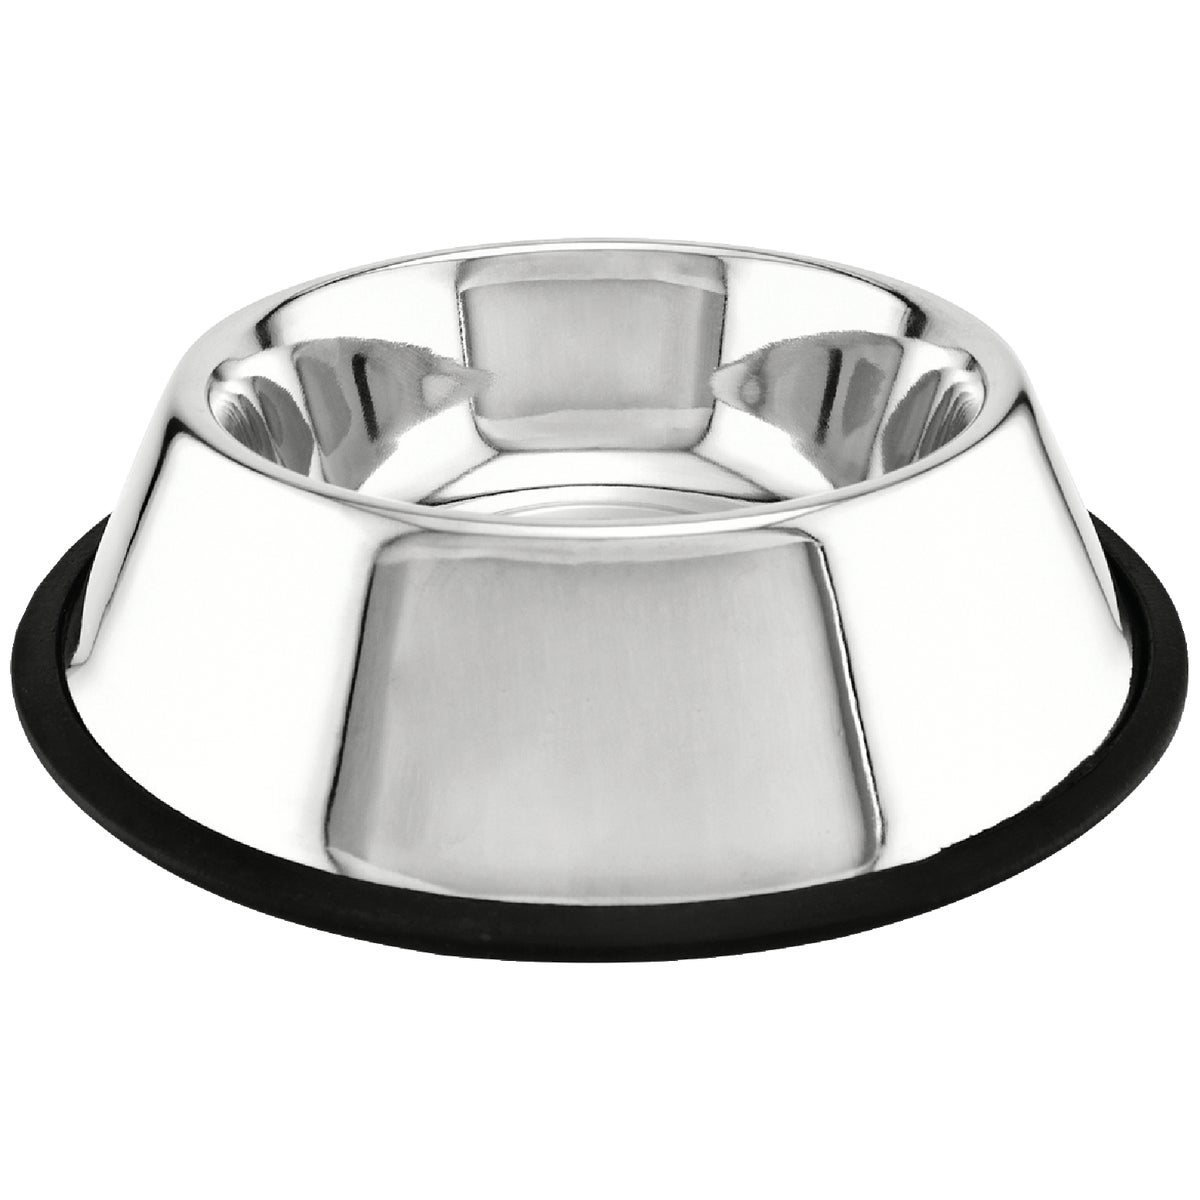 24OZ NO-SKID SS PET BOWL - 19124 by Westminster Pet